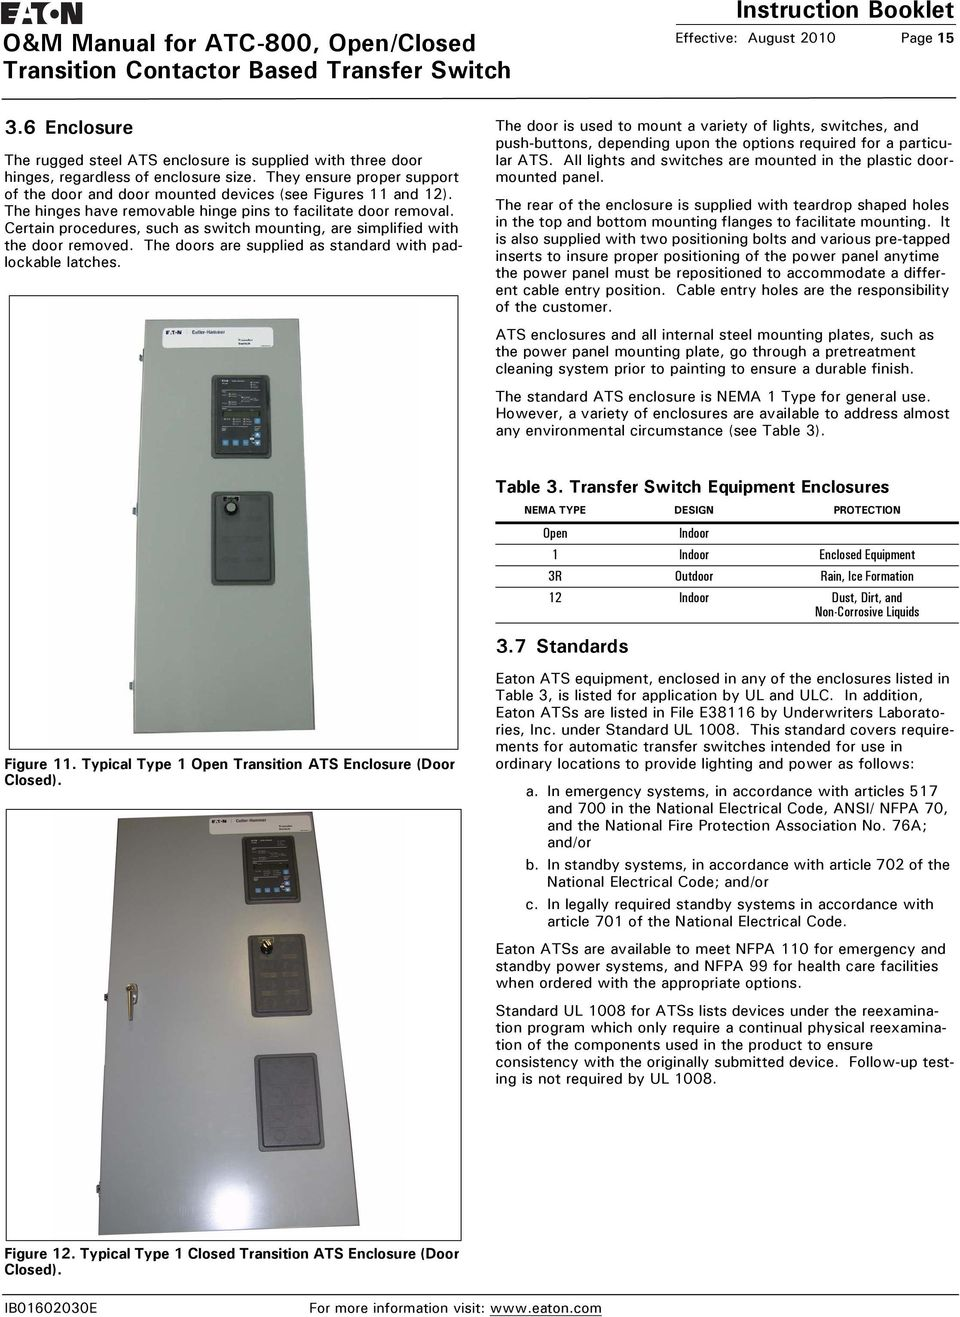 Eaton Atc 800 Wiring Diagram Electrical Diagrams Dme O M Manual For Open Closed Transition Contactor Based Balluff